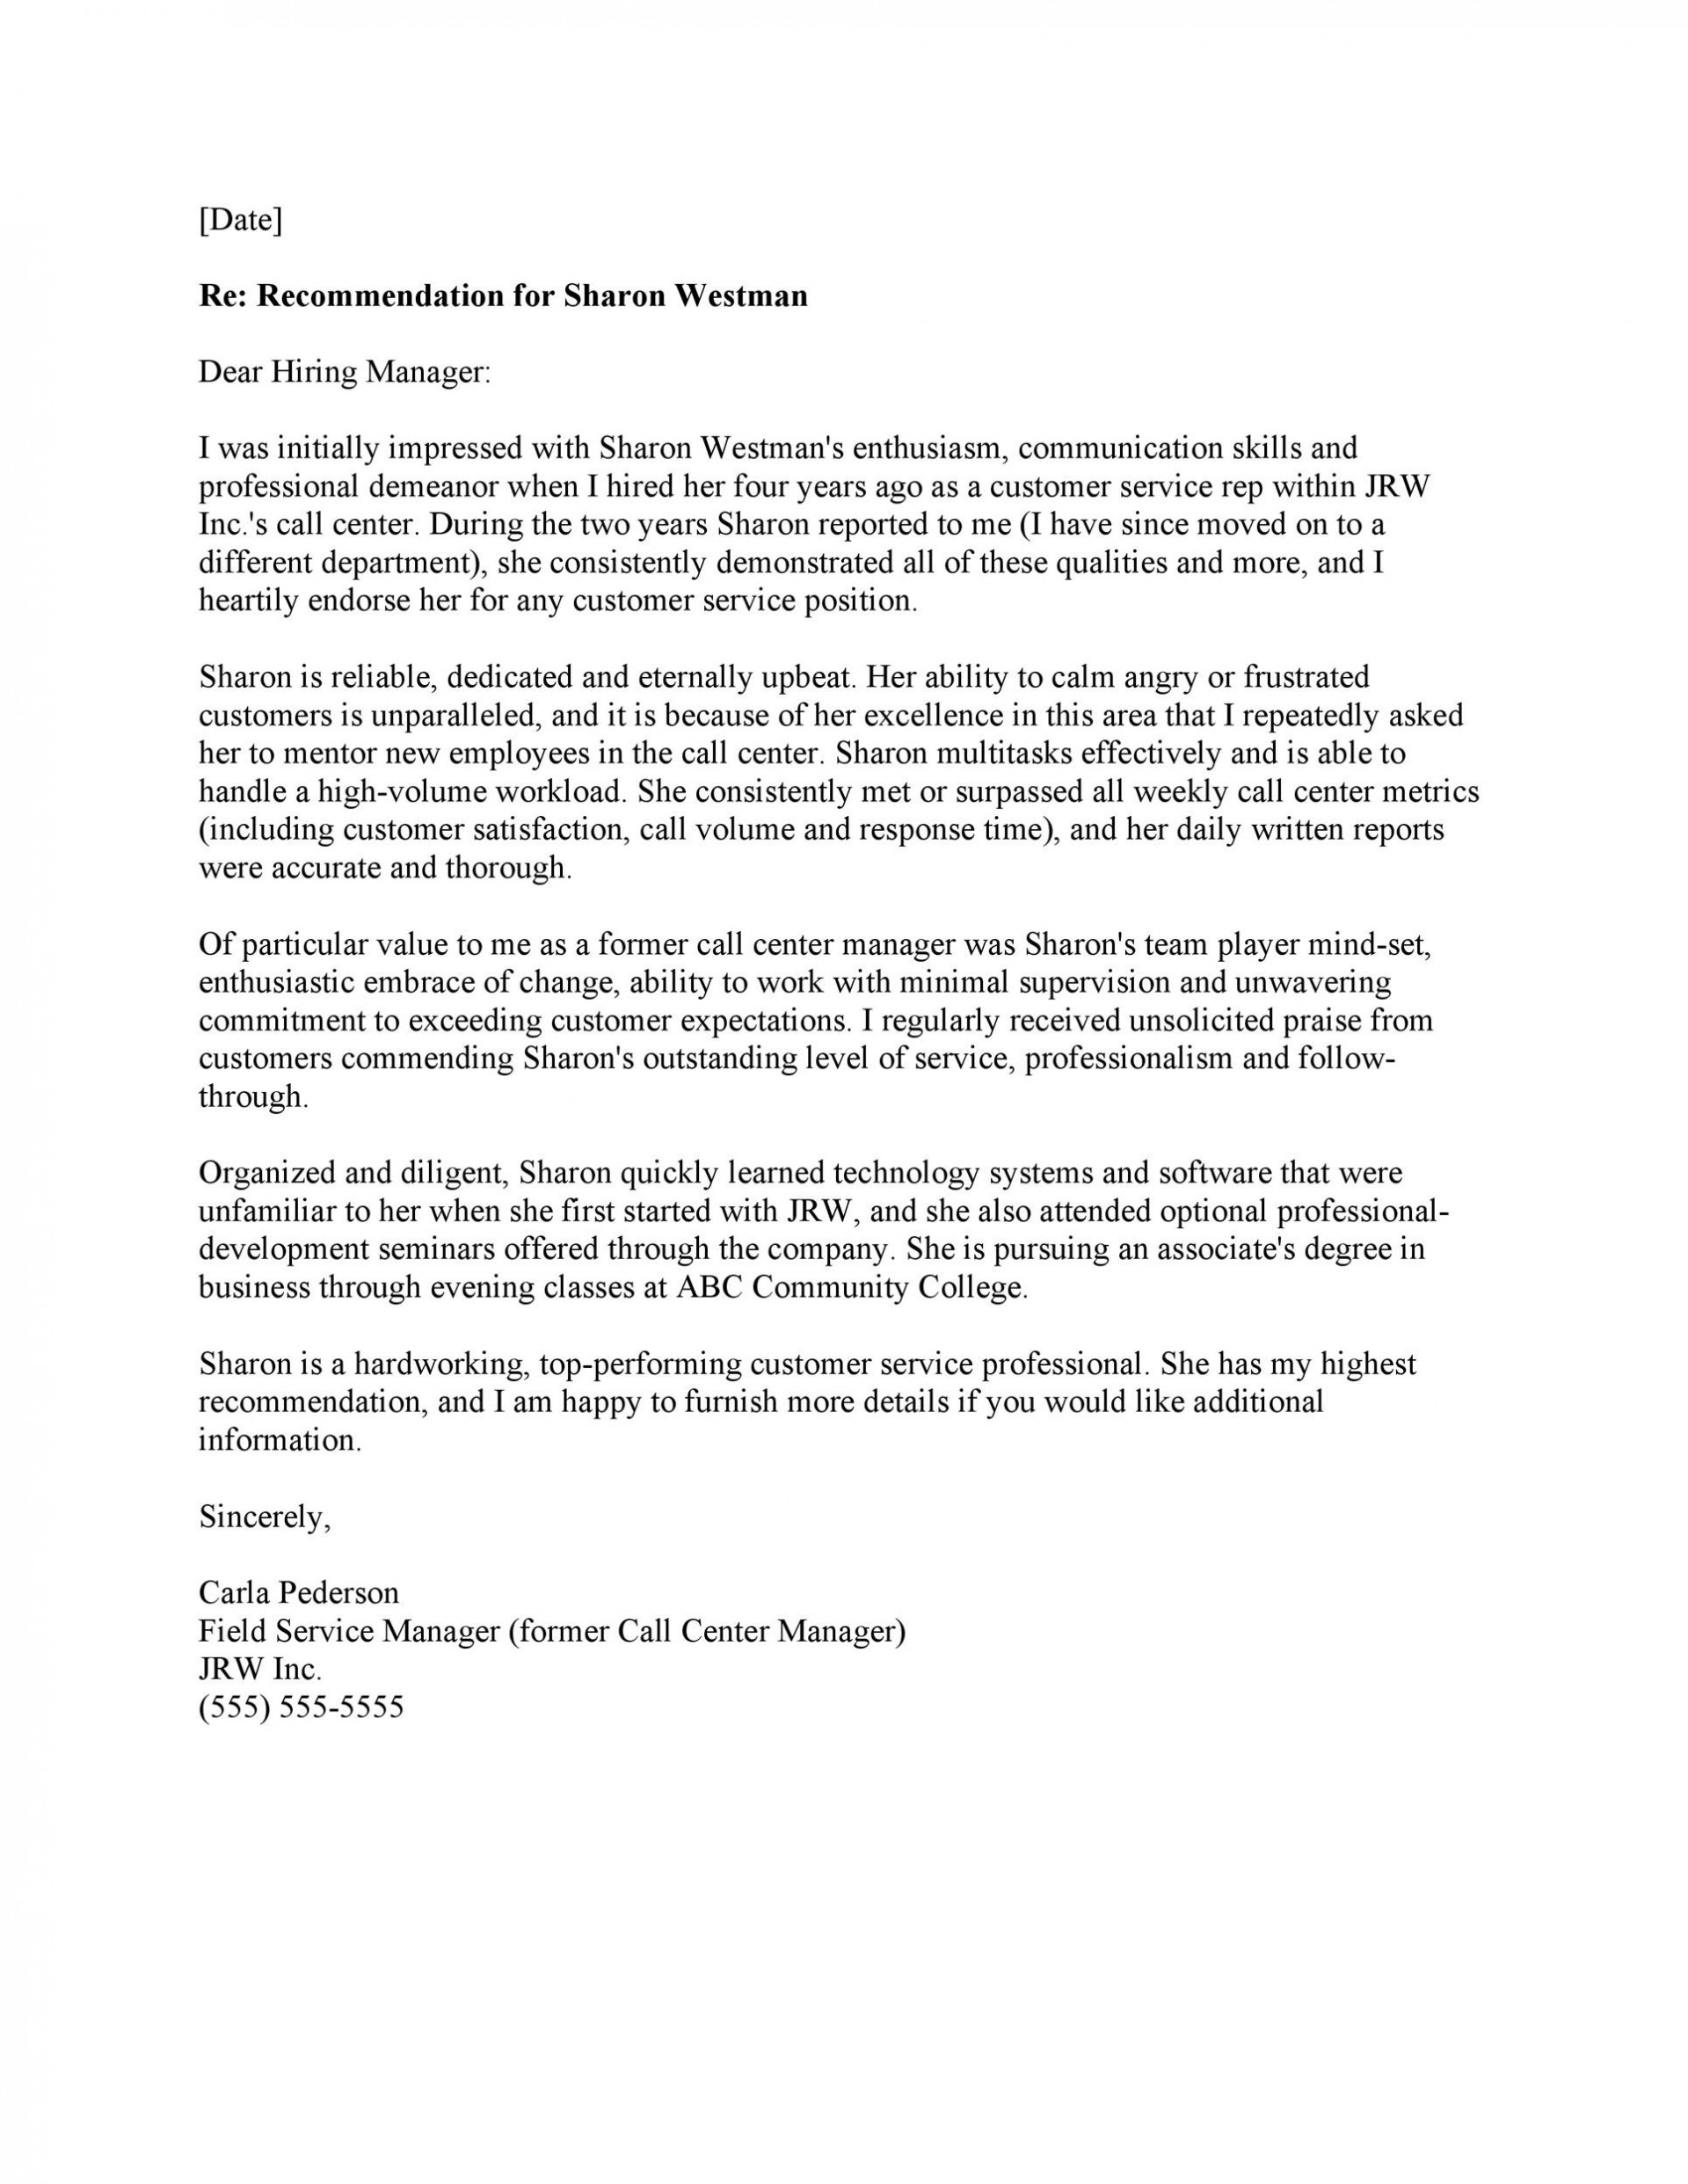 007 Fearsome Professional Reference Letter Template Inspiration  Doc Nursing Free1920